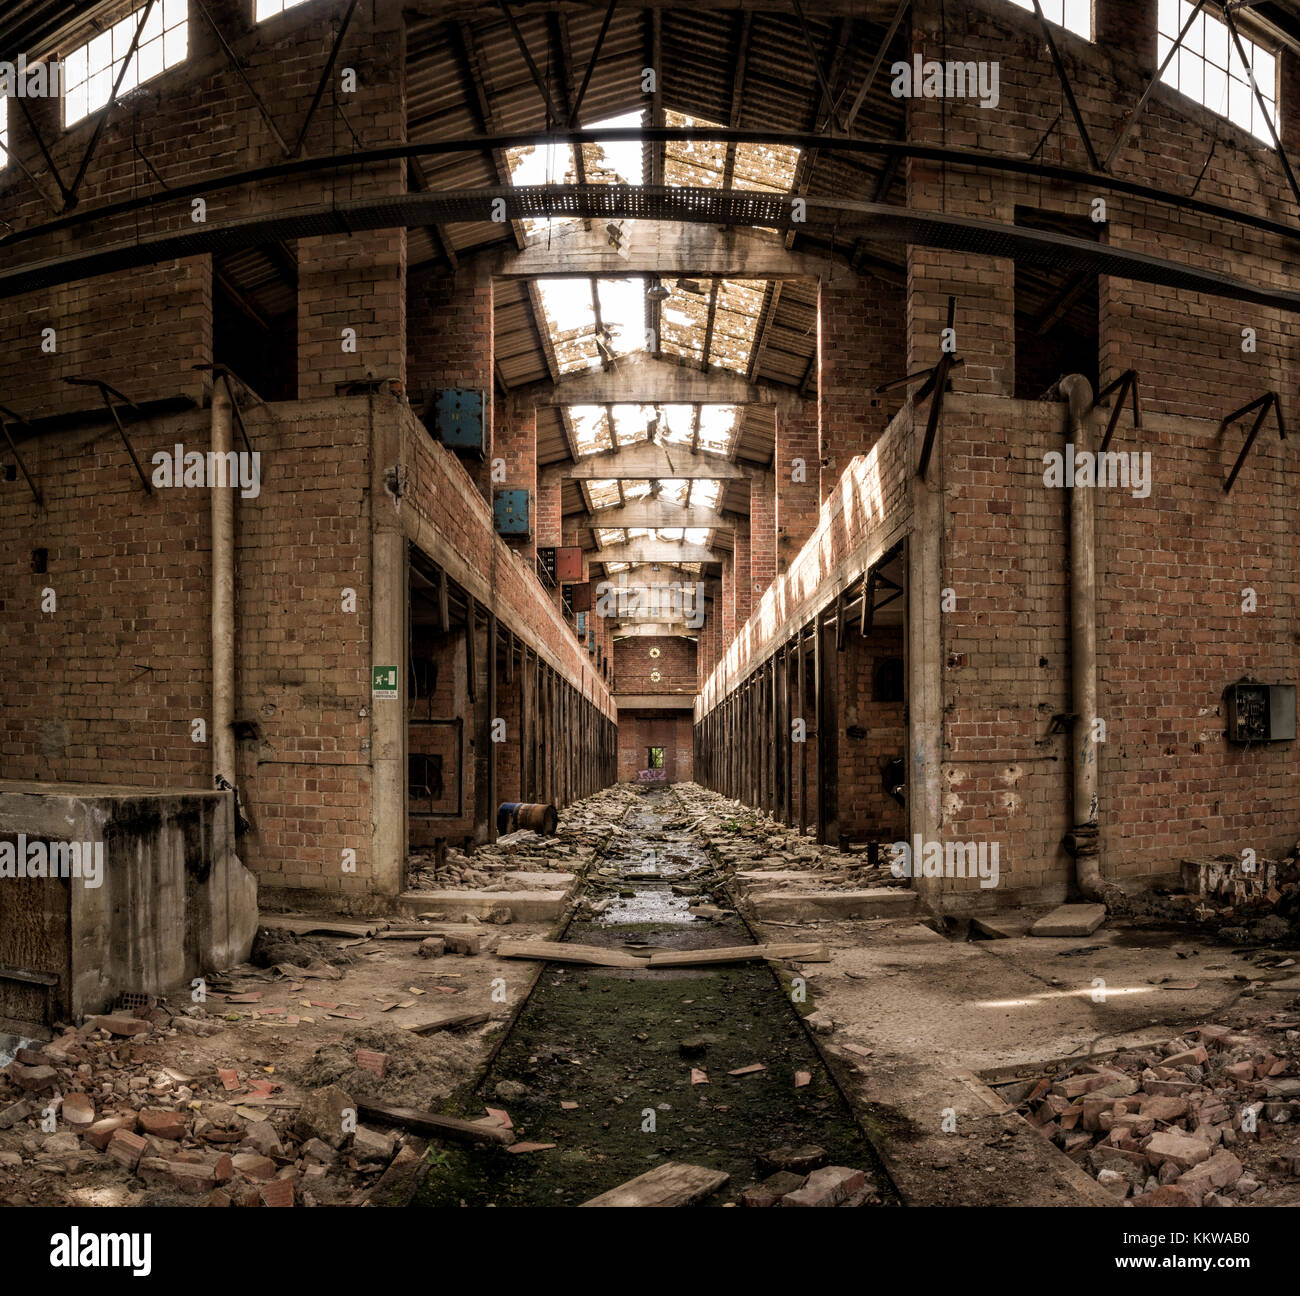 Interior of abandoned factory, central perspective - Stock Image